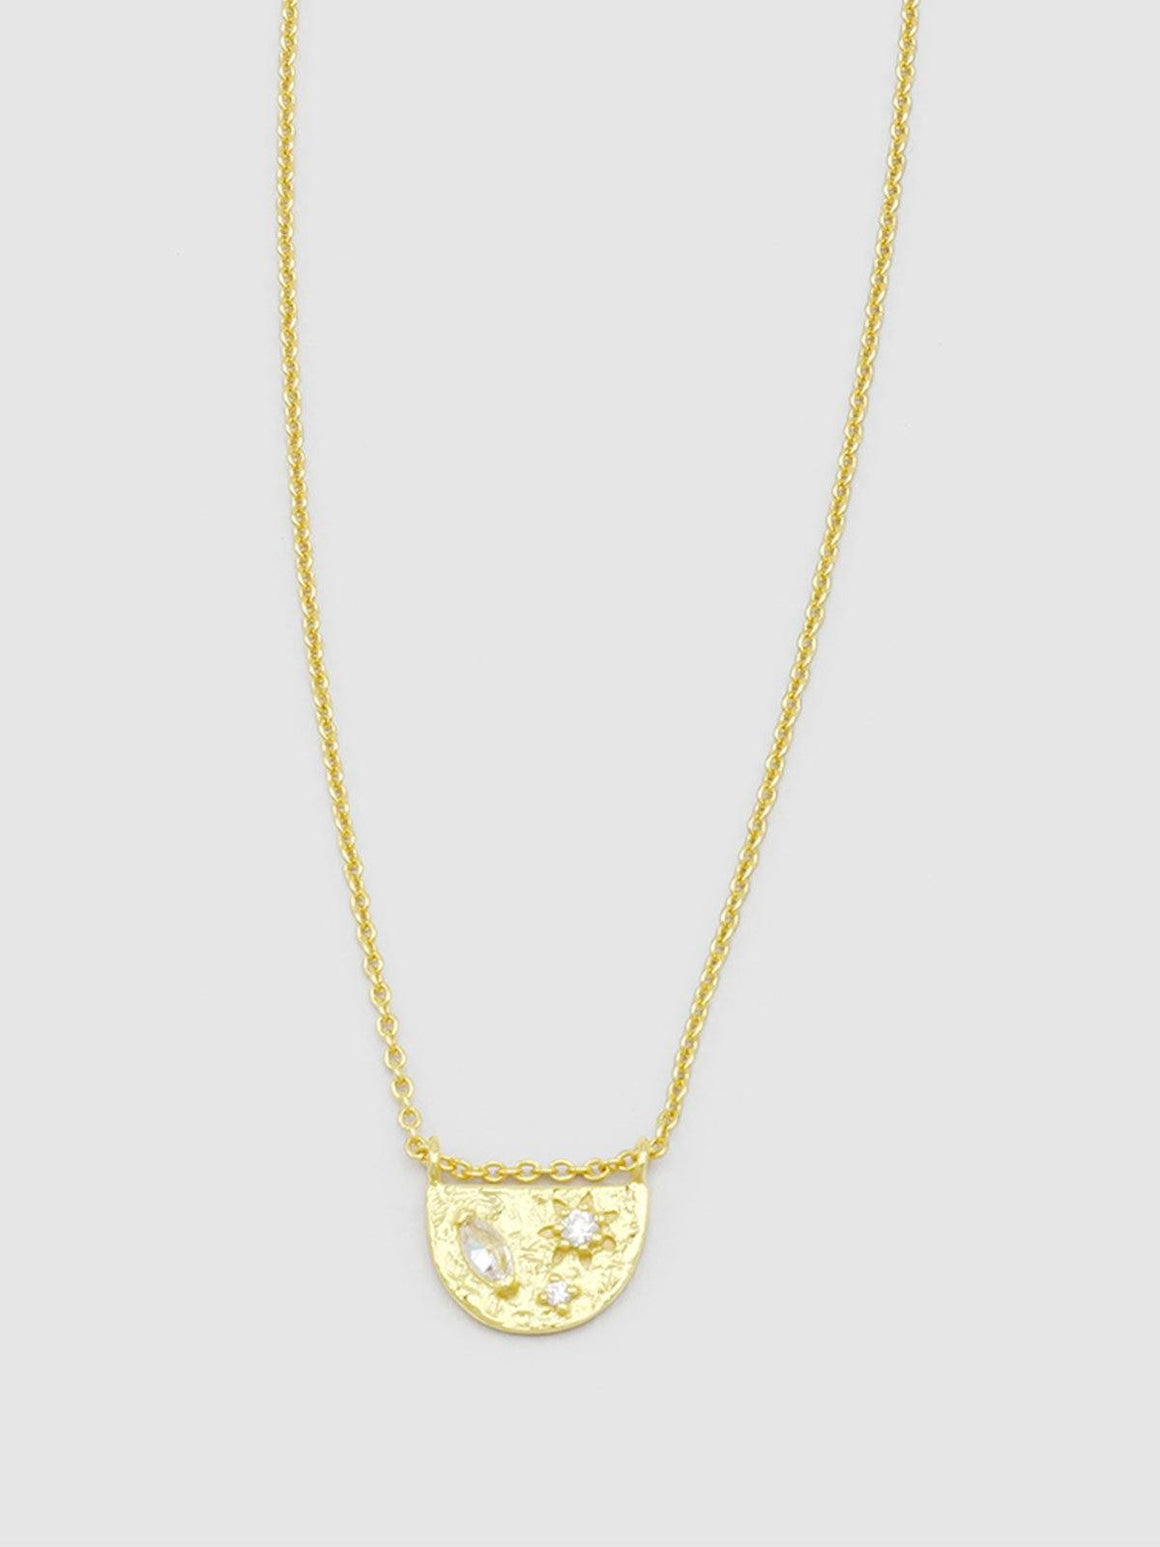 Jolie & Deen Asta Necklace - Gold | Perlu